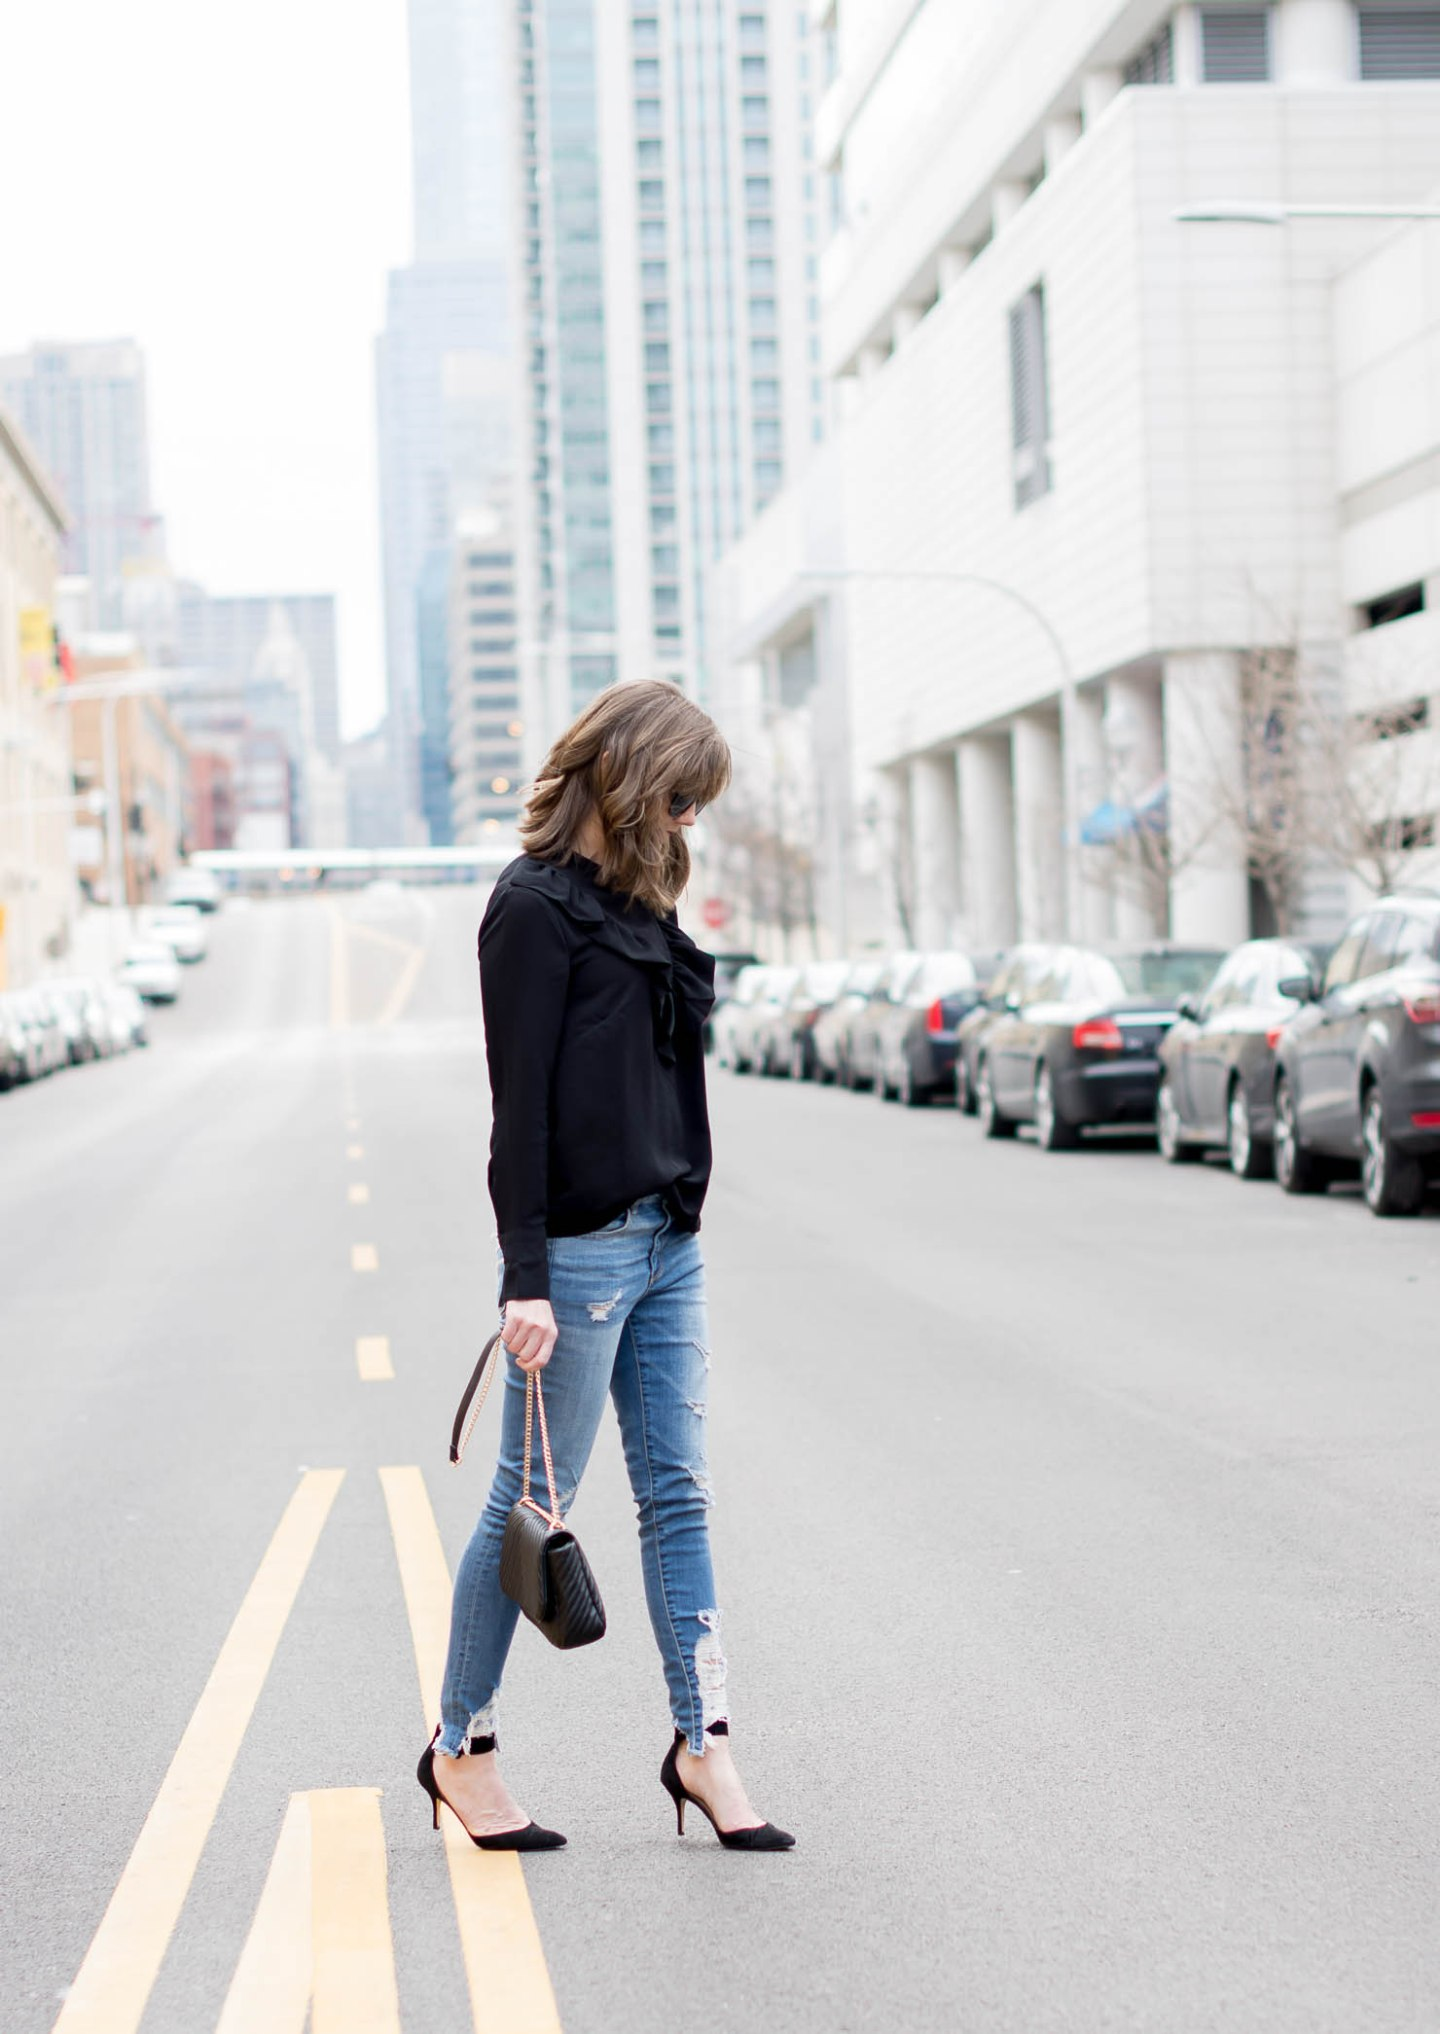 ruffled blouses, h&m black bib ruffle blouse, the best distressed skinny jeans, american eagle high rise jeggings, how to mix dressy and casual, my favorite ruffled blouses